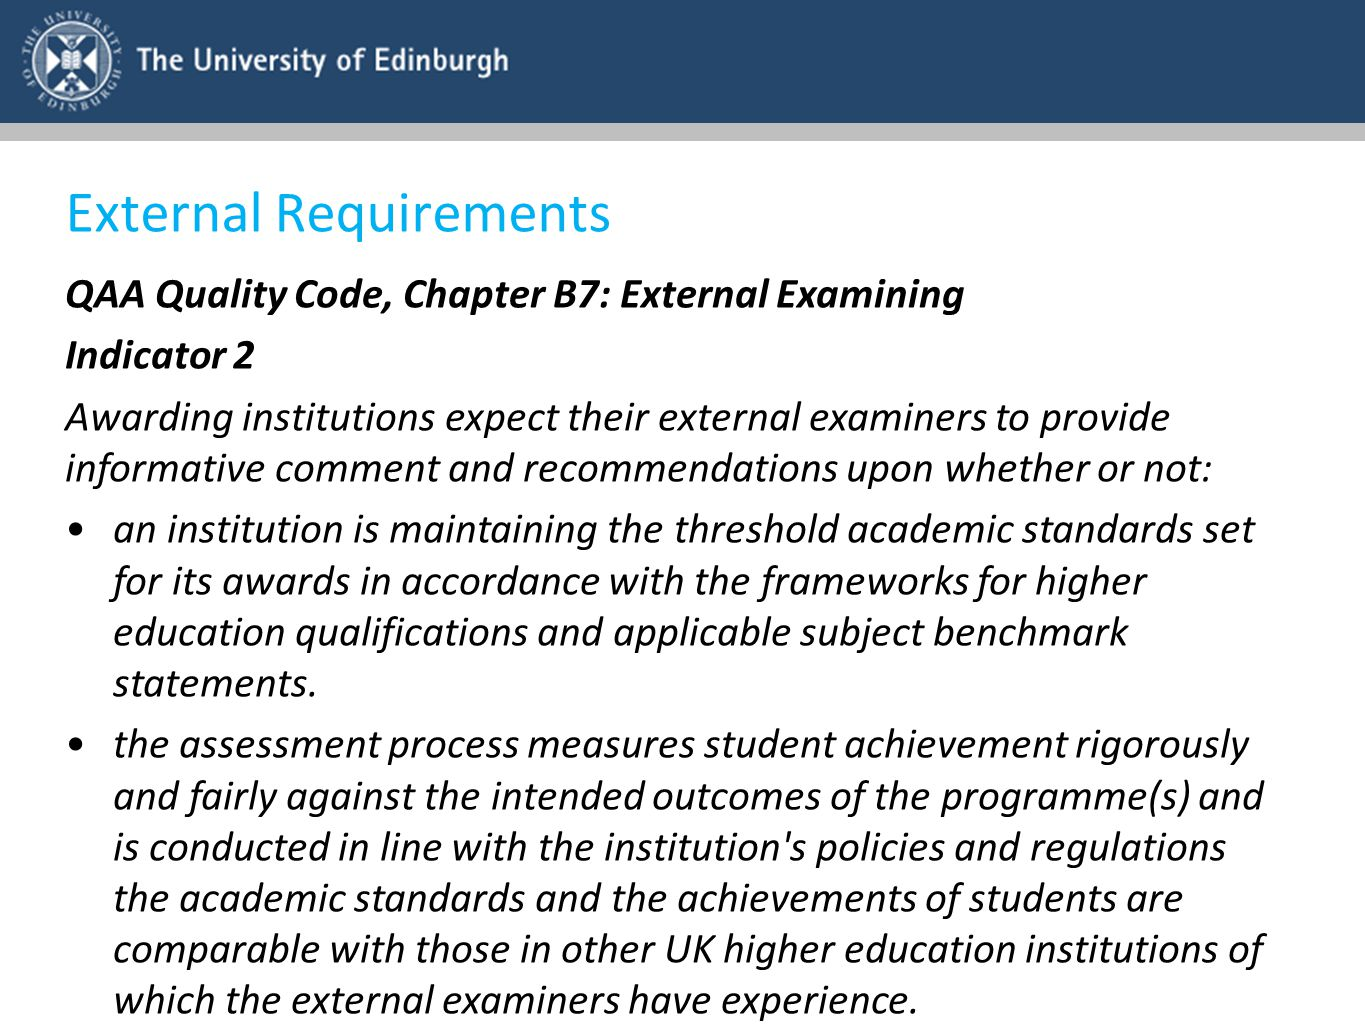 External Requirements QAA Quality Code, Chapter B7: External Examining Indicator 2 Awarding institutions expect their external examiners to provide in